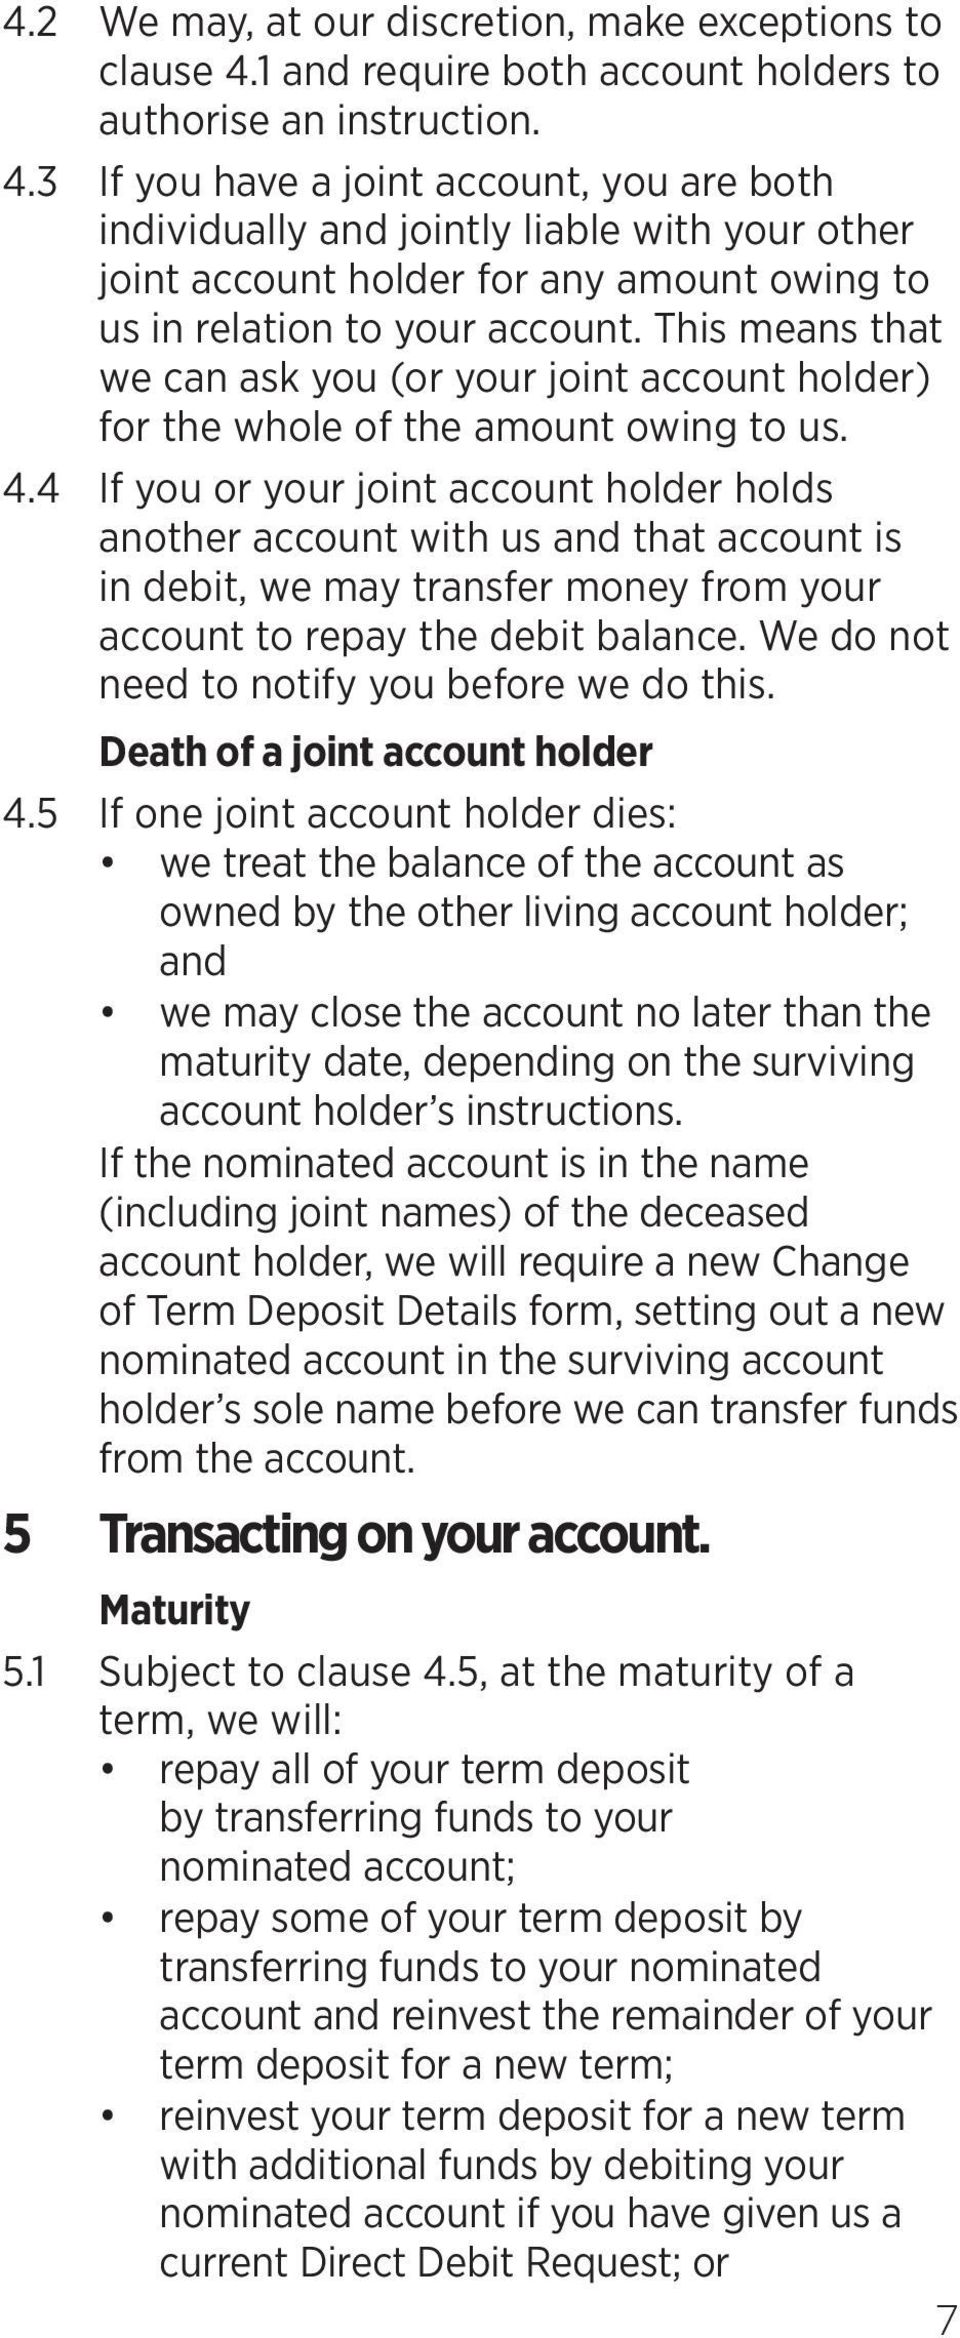 3 If you have a joint account, you are both individually and jointly liable with your other joint account holder for any amount owing to us in relation to your account.